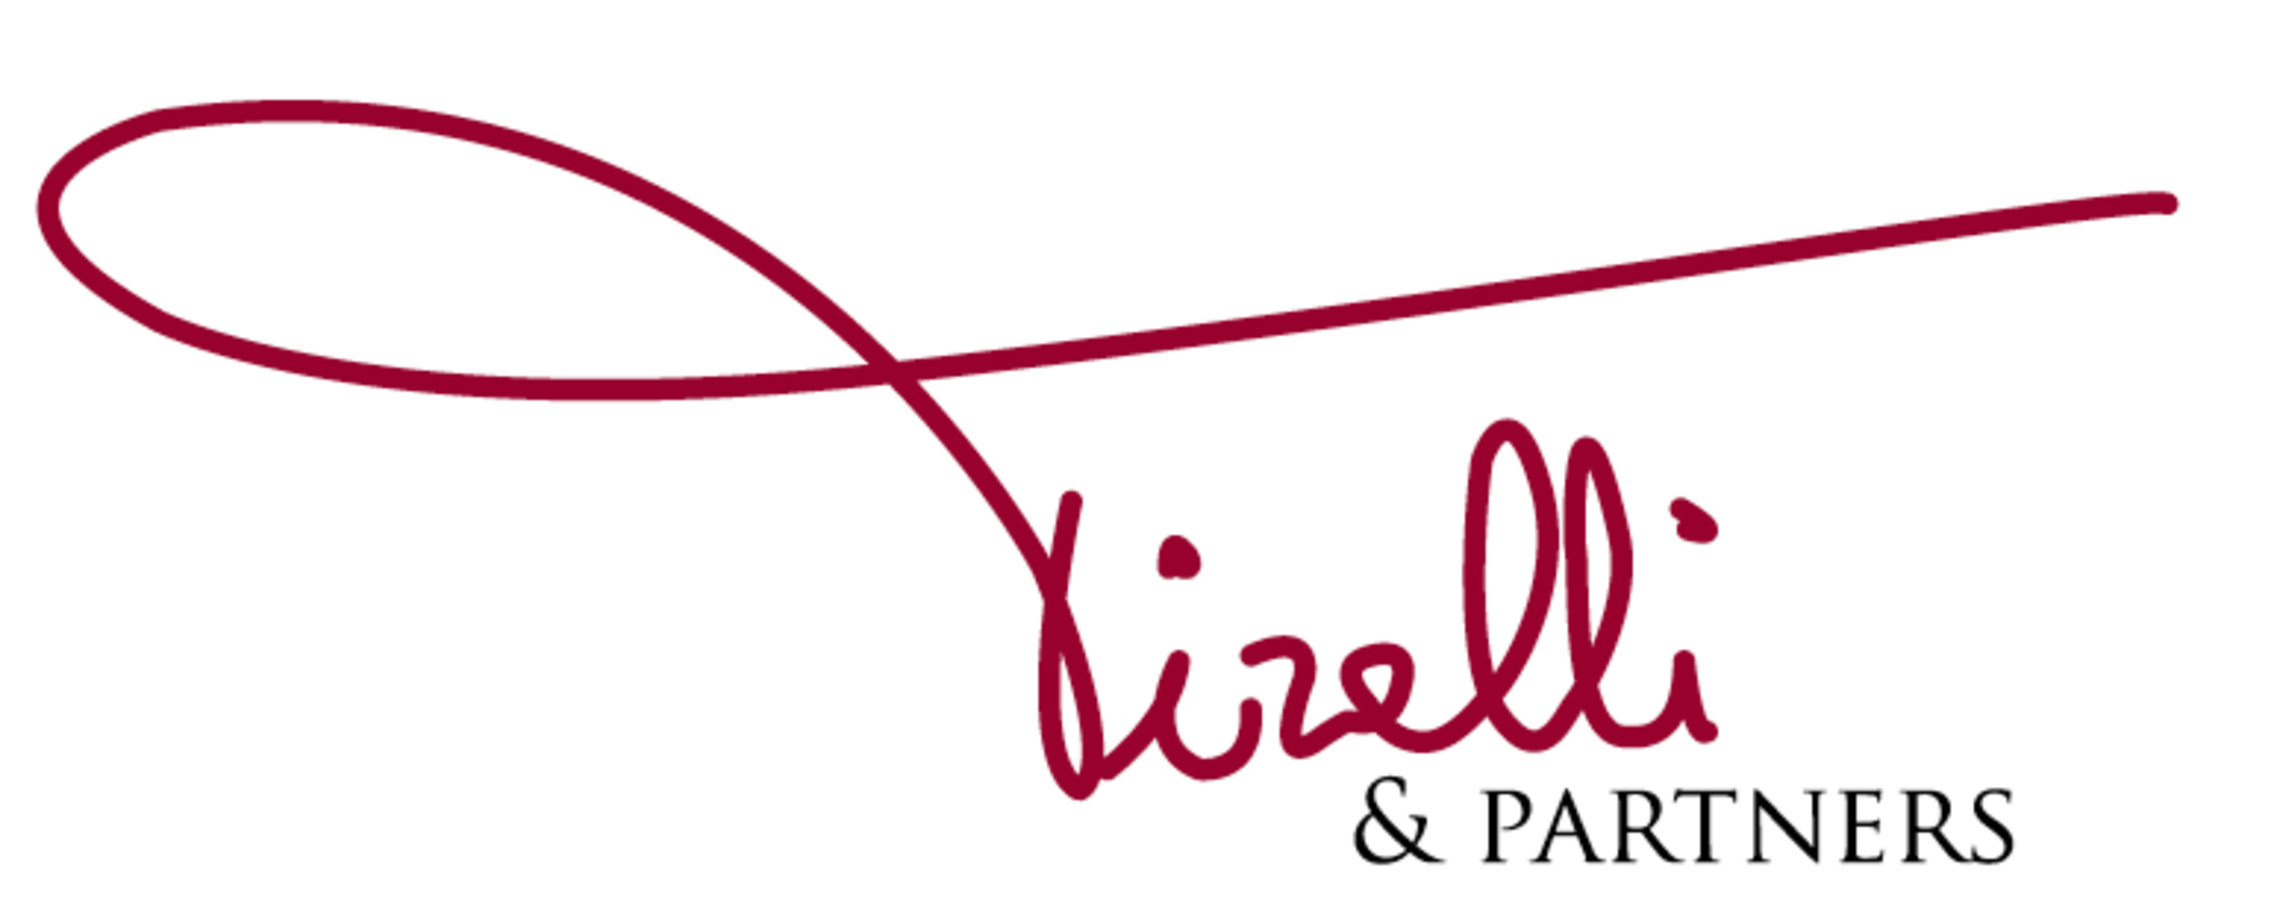 tirelli partners luxury- company logo